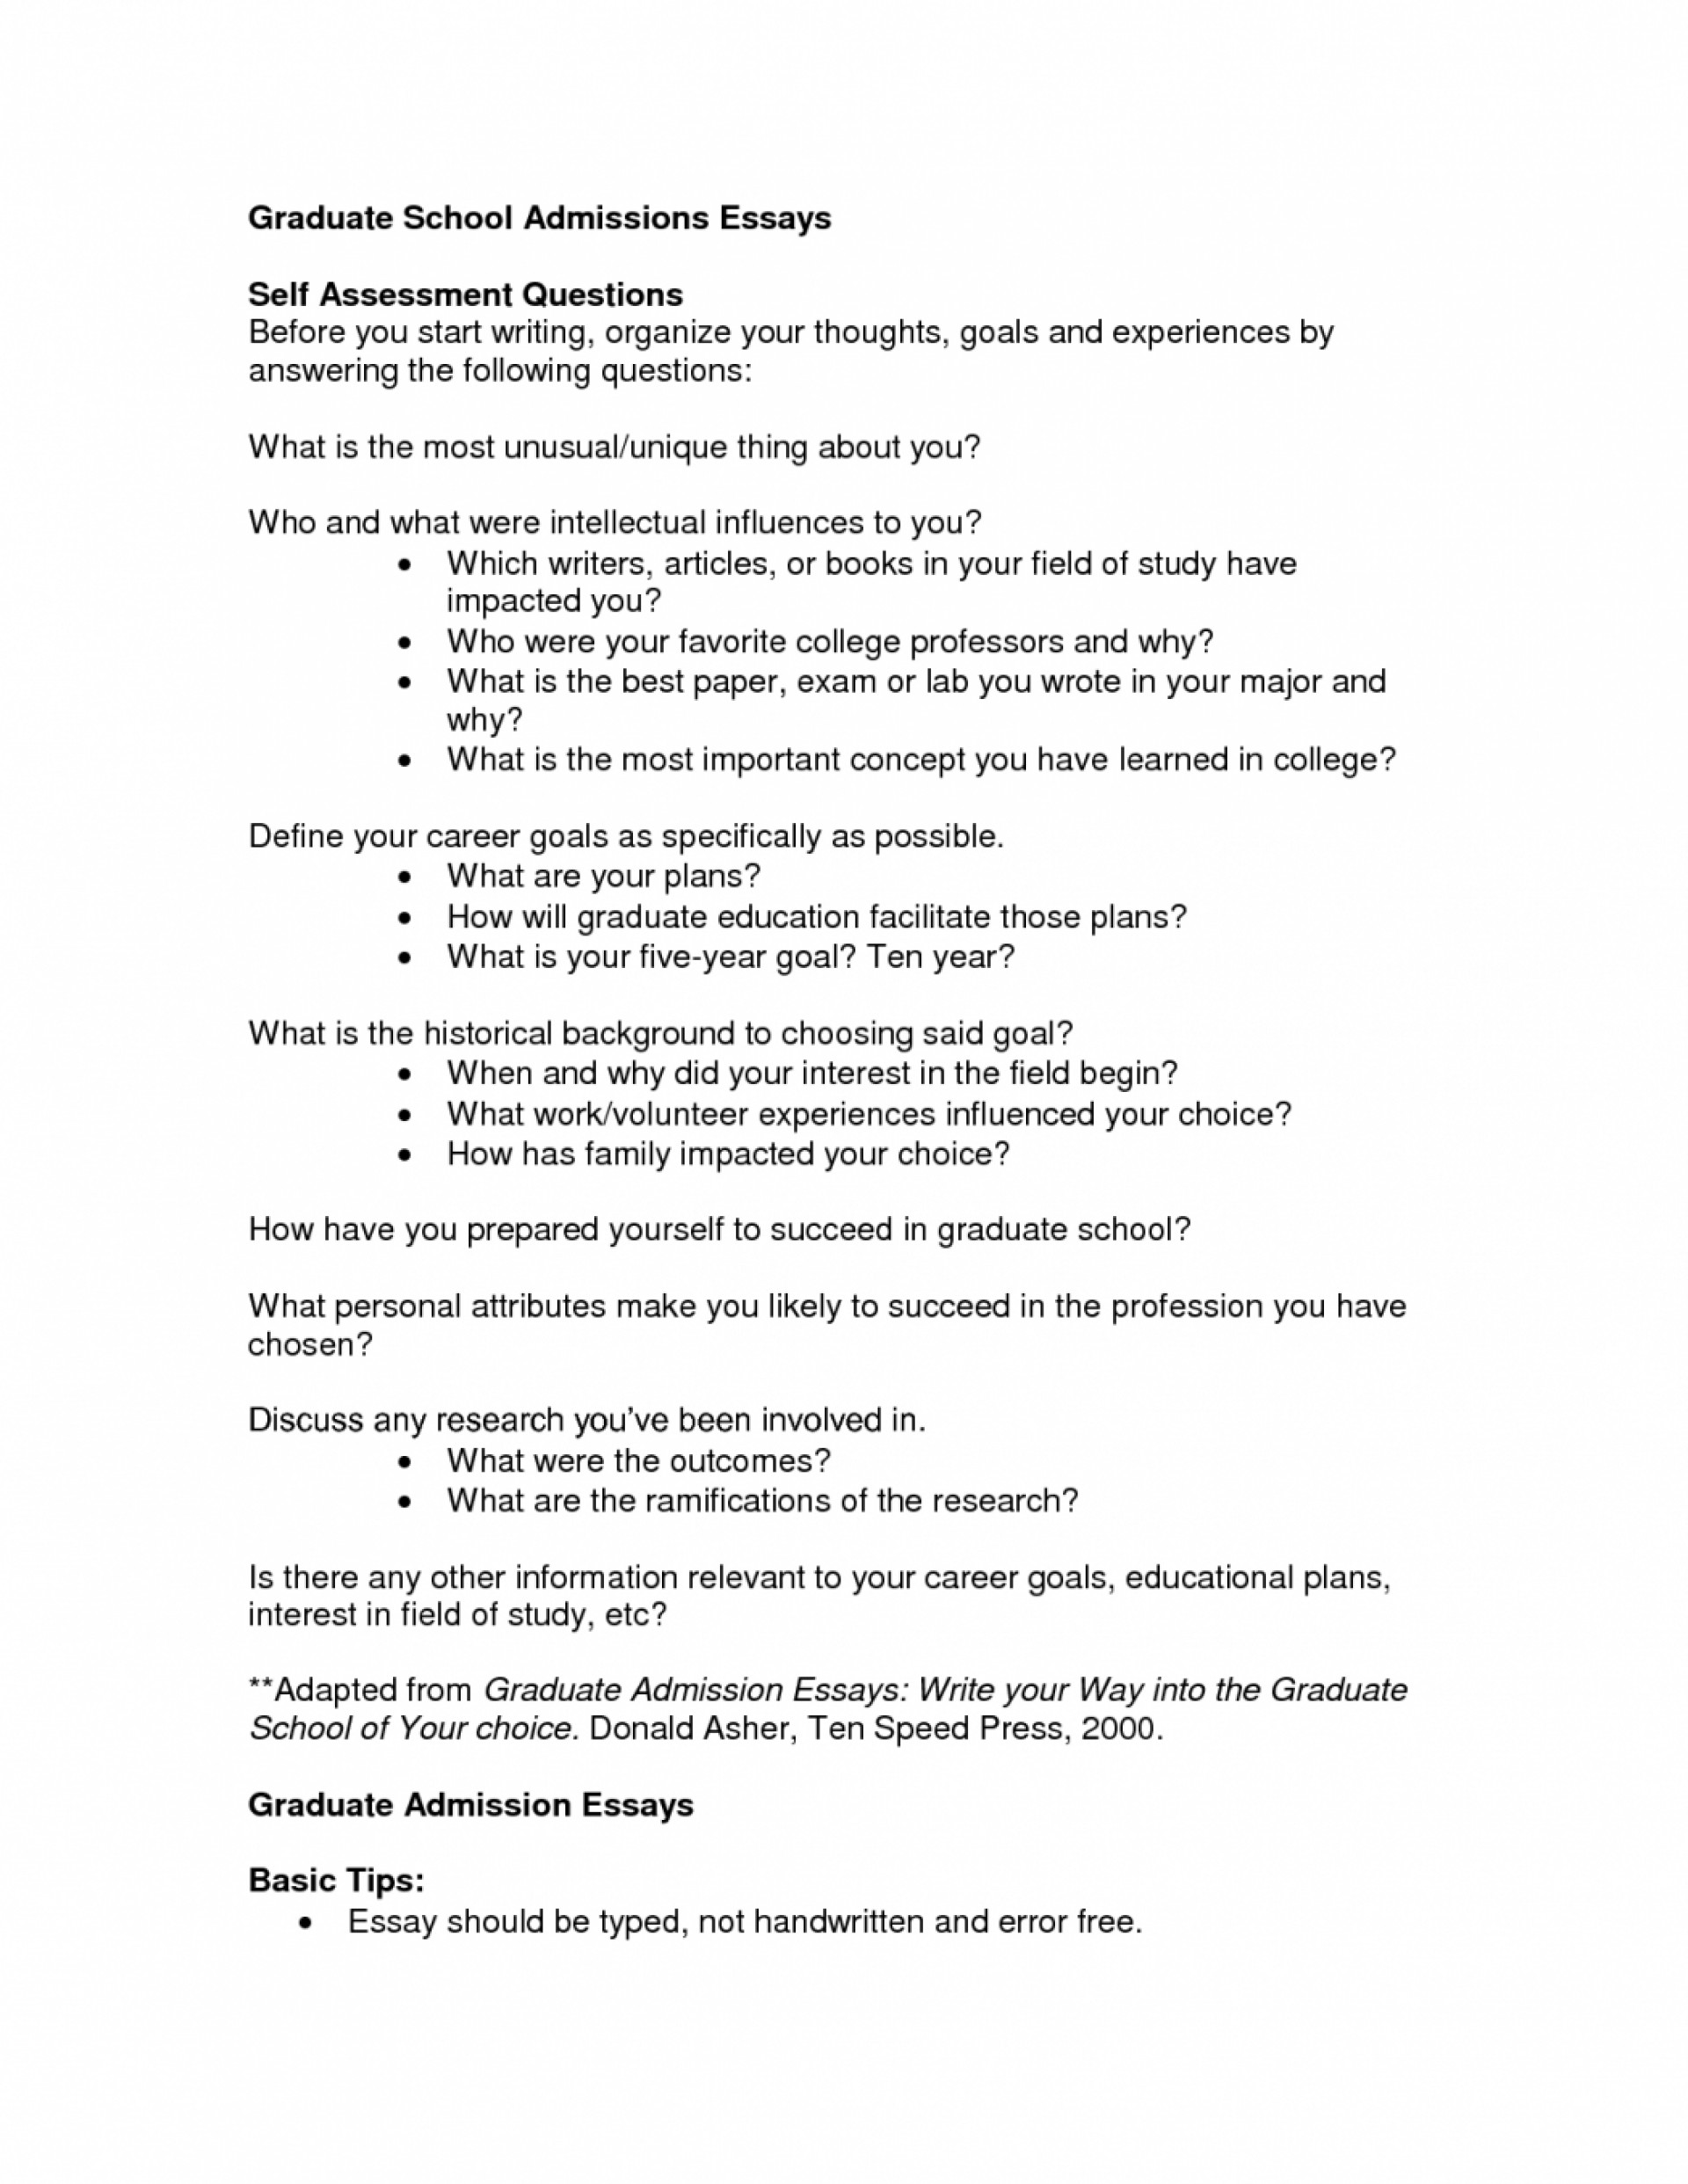 011 Essay Example Do Myaduate Essays Custom Writing Company An For School Application Gp7xjad Personal Sample Social Work Autobiographical College Psychology 1048x1356 Surprising Graduate Admission Masters How To Write Degree In Nursing 1920